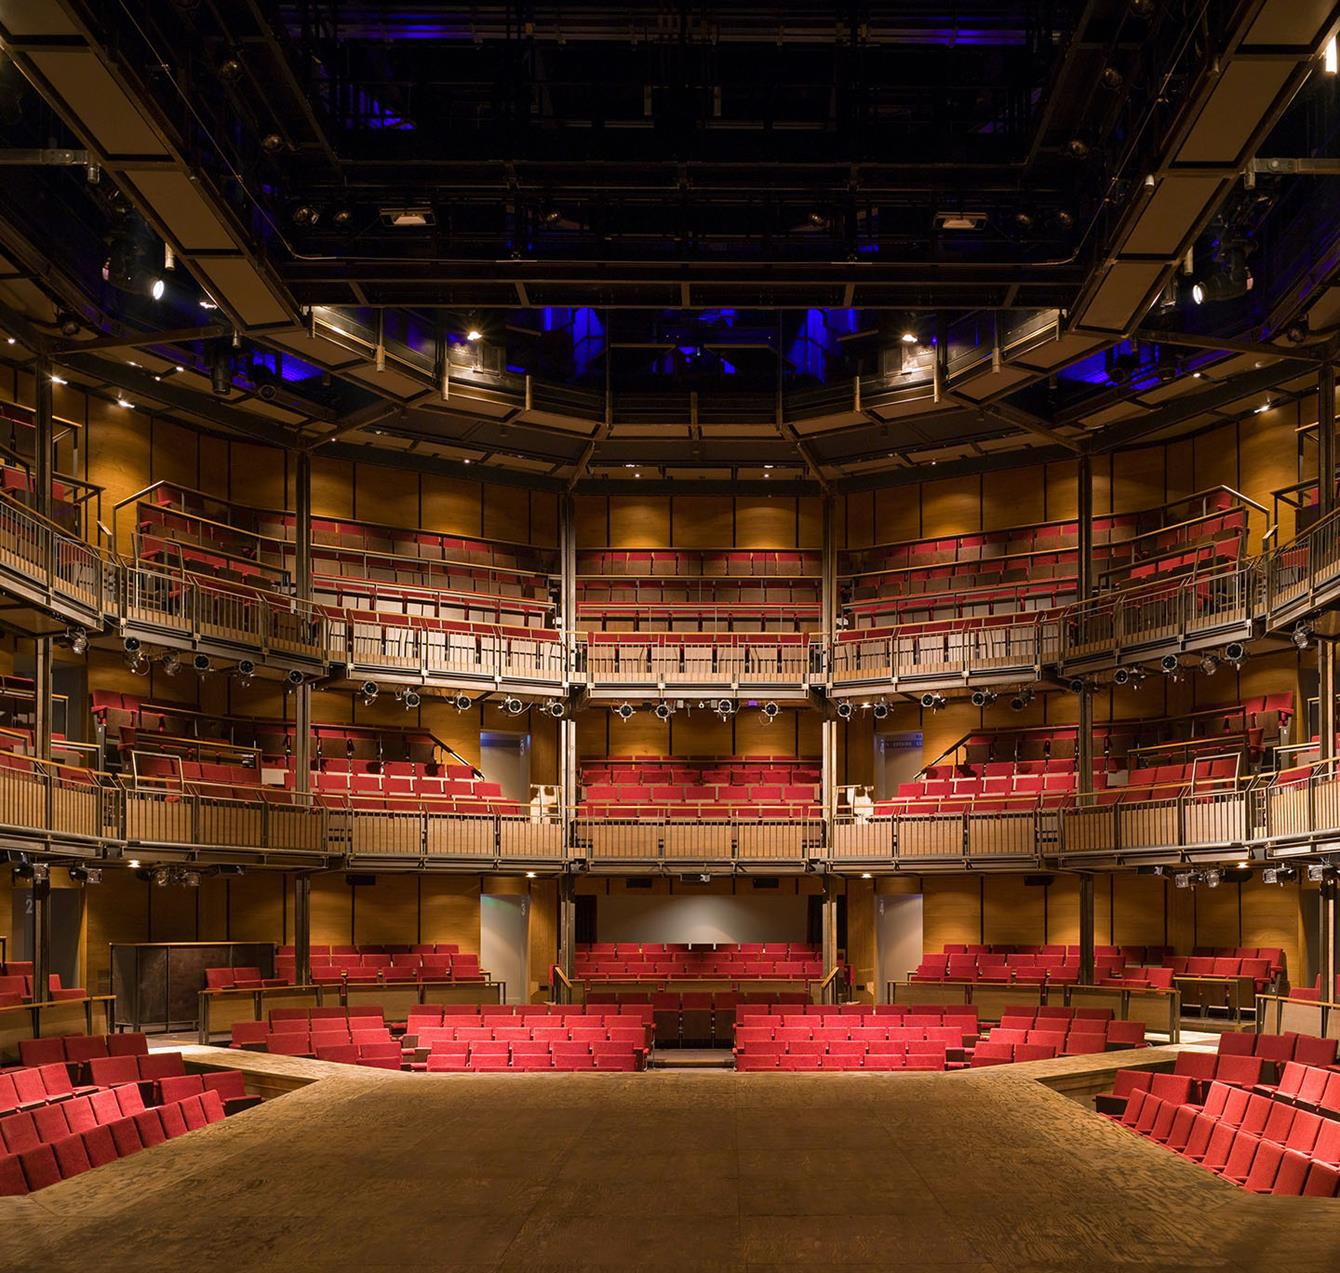 Seating Plans Royal Shakespeare Company